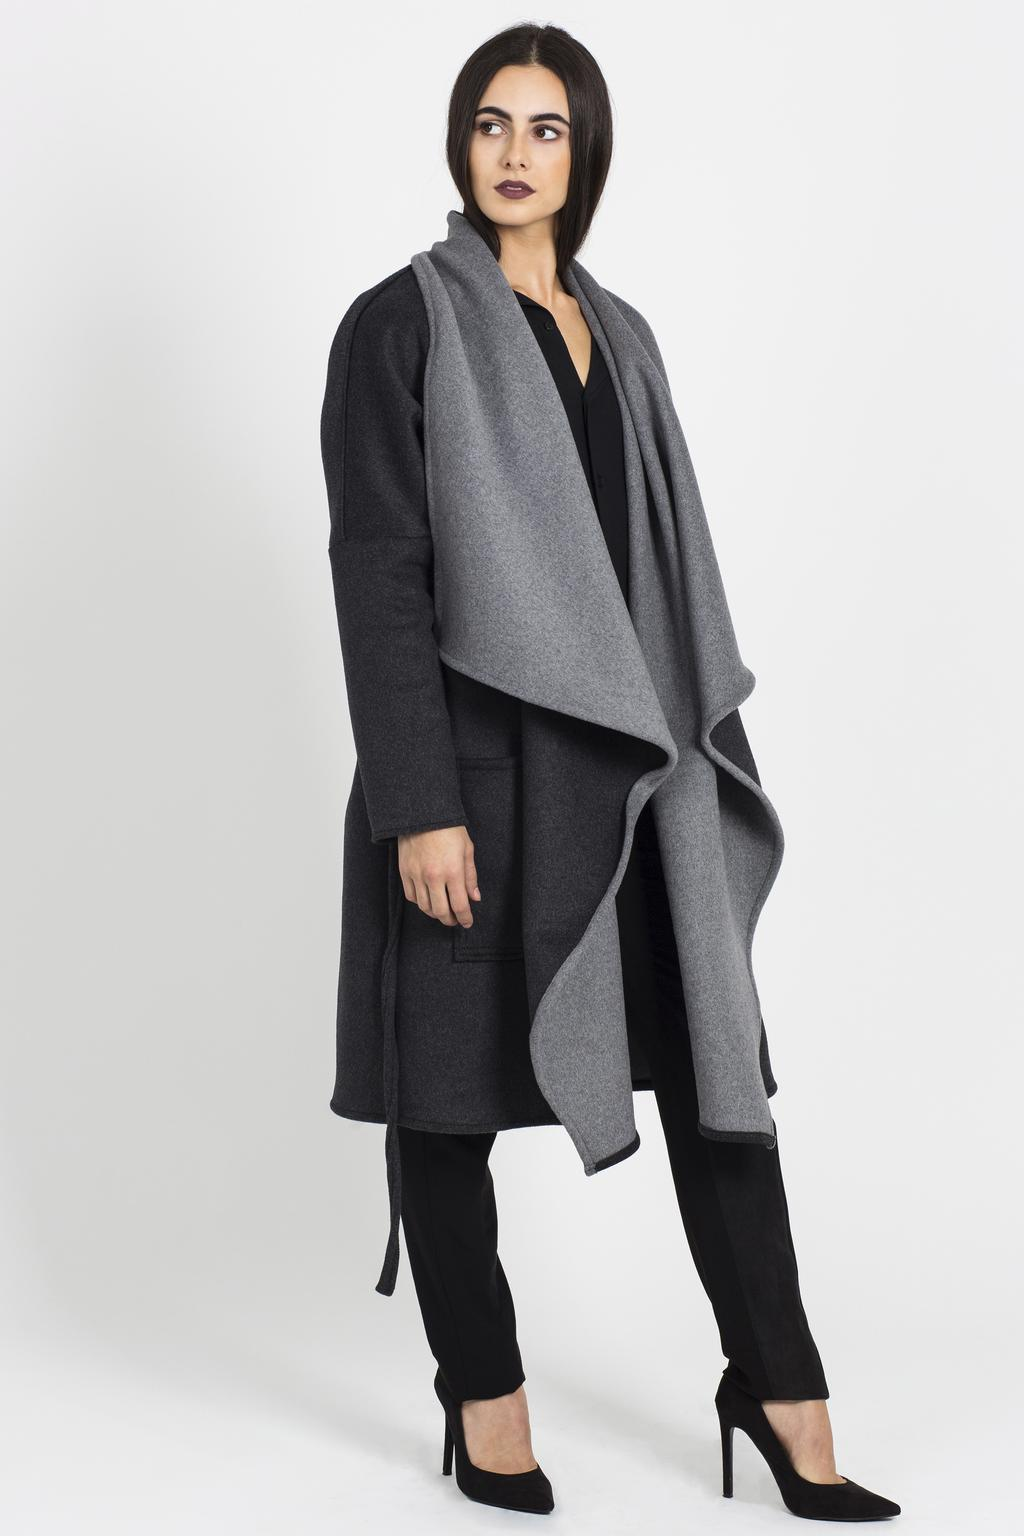 Manteau EVERLASTING (366 $) de Allcovered